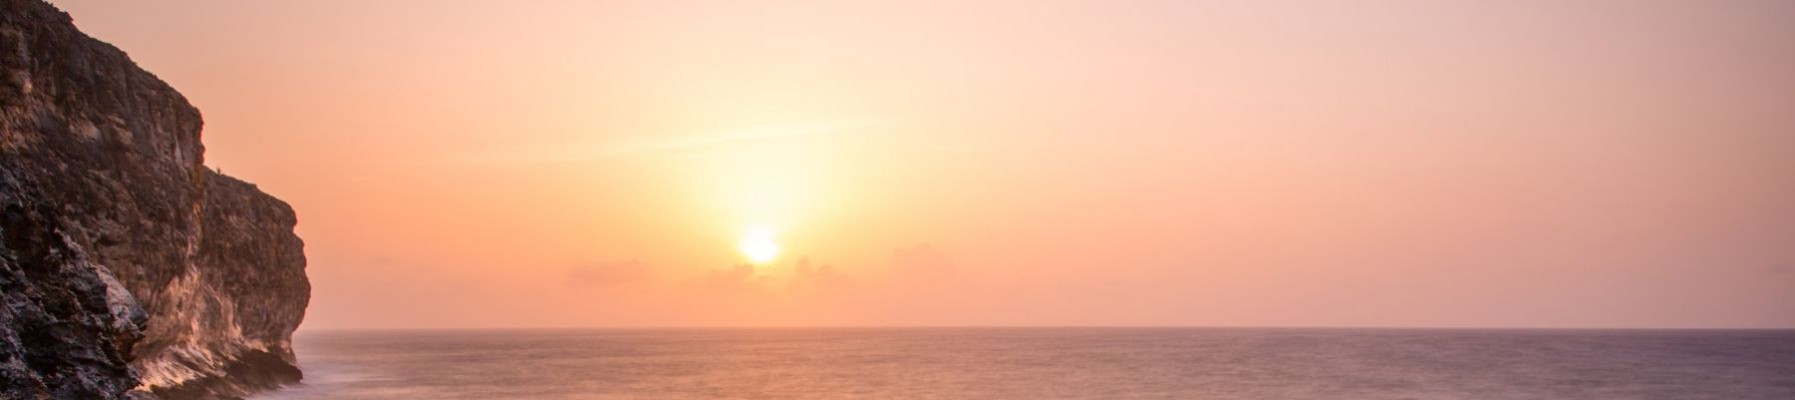 Cayman Brac Bluff Sunrise